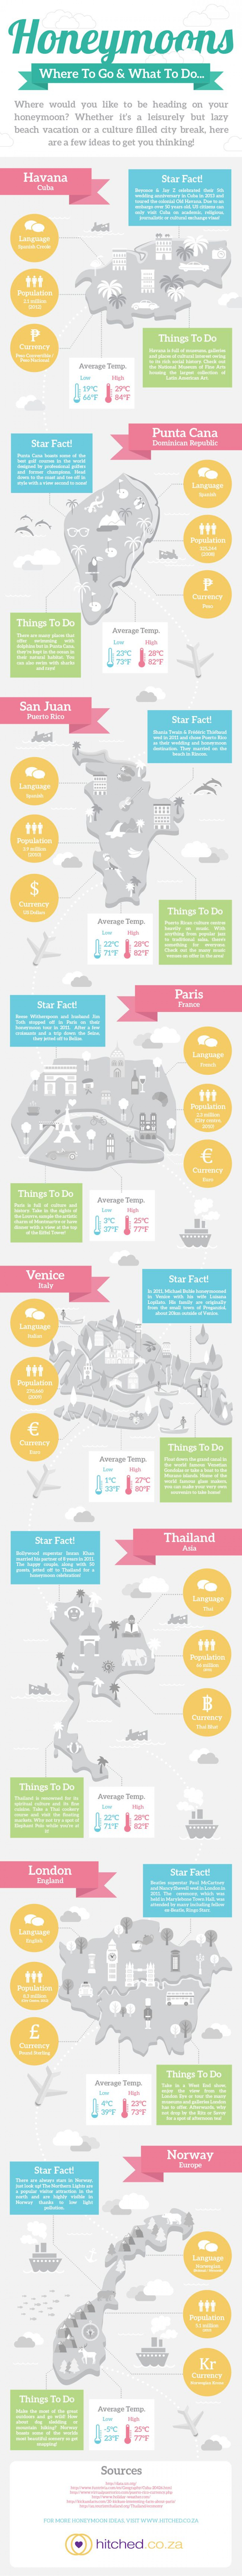 Honeymoons: Where To Go and What To Do Infographic